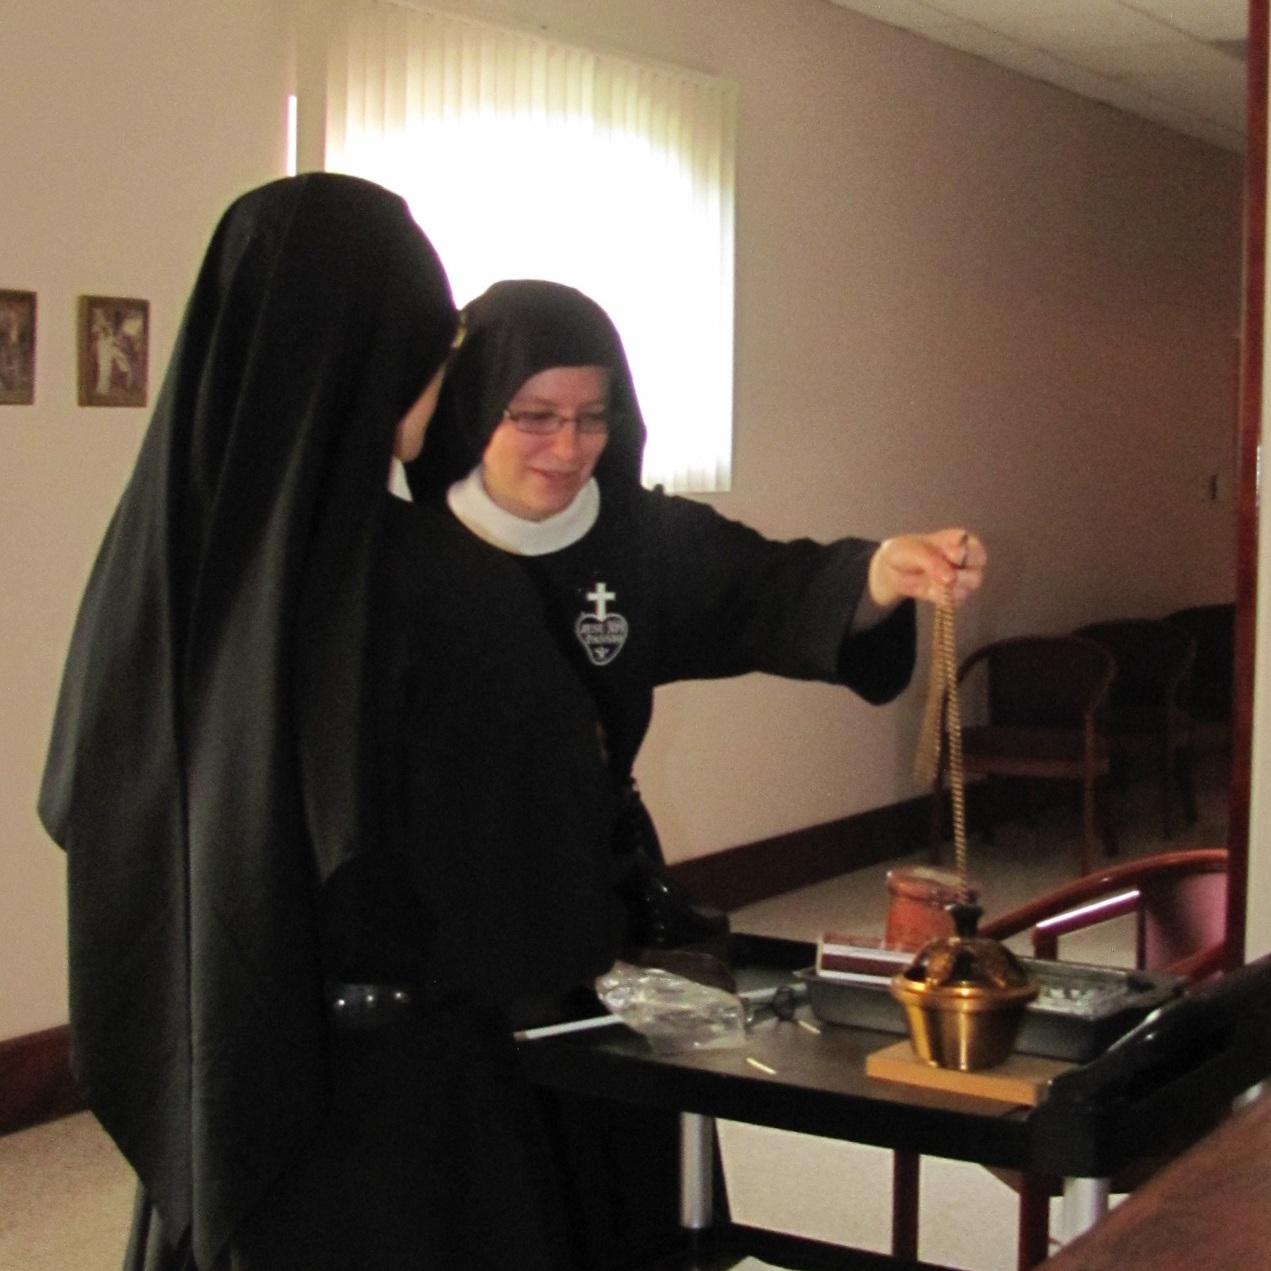 40 Hours was beautifully and reverently celebrated thanks in large part to the care of Sr. Frances Marie - we thank her for her marvelous job preparing for her first big feast as Sacristan!